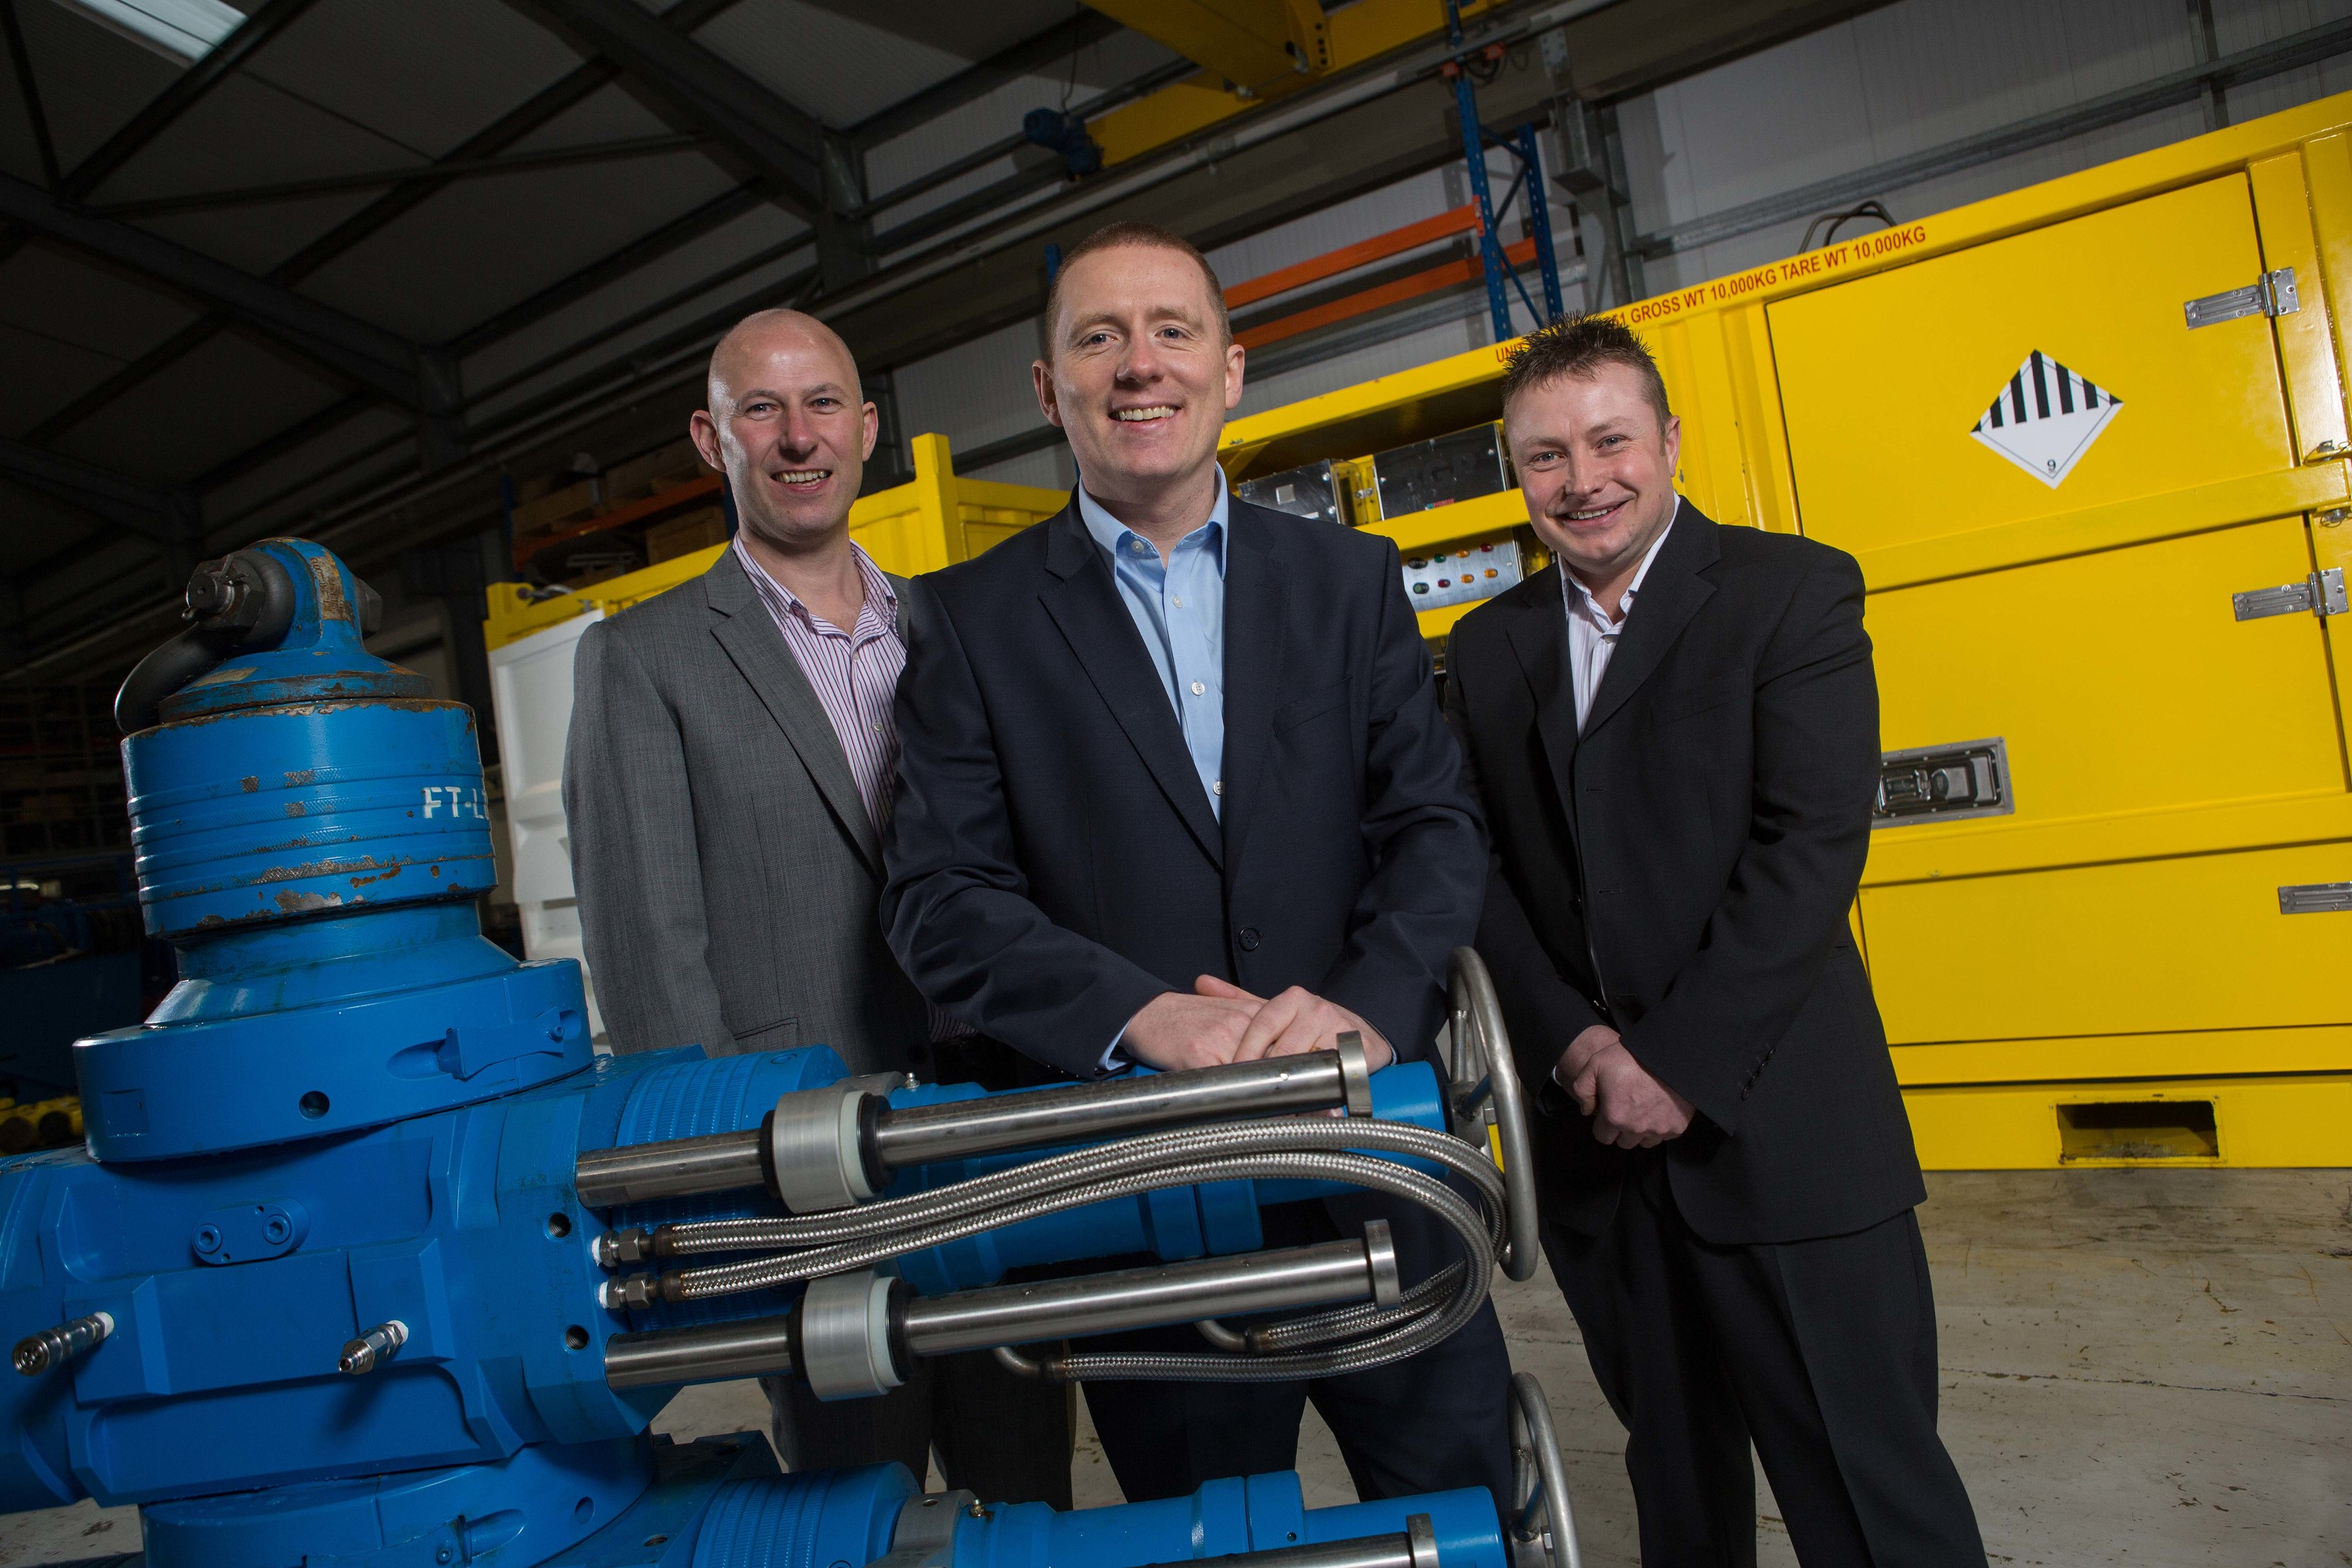 RMEC has achieved its highest turnover